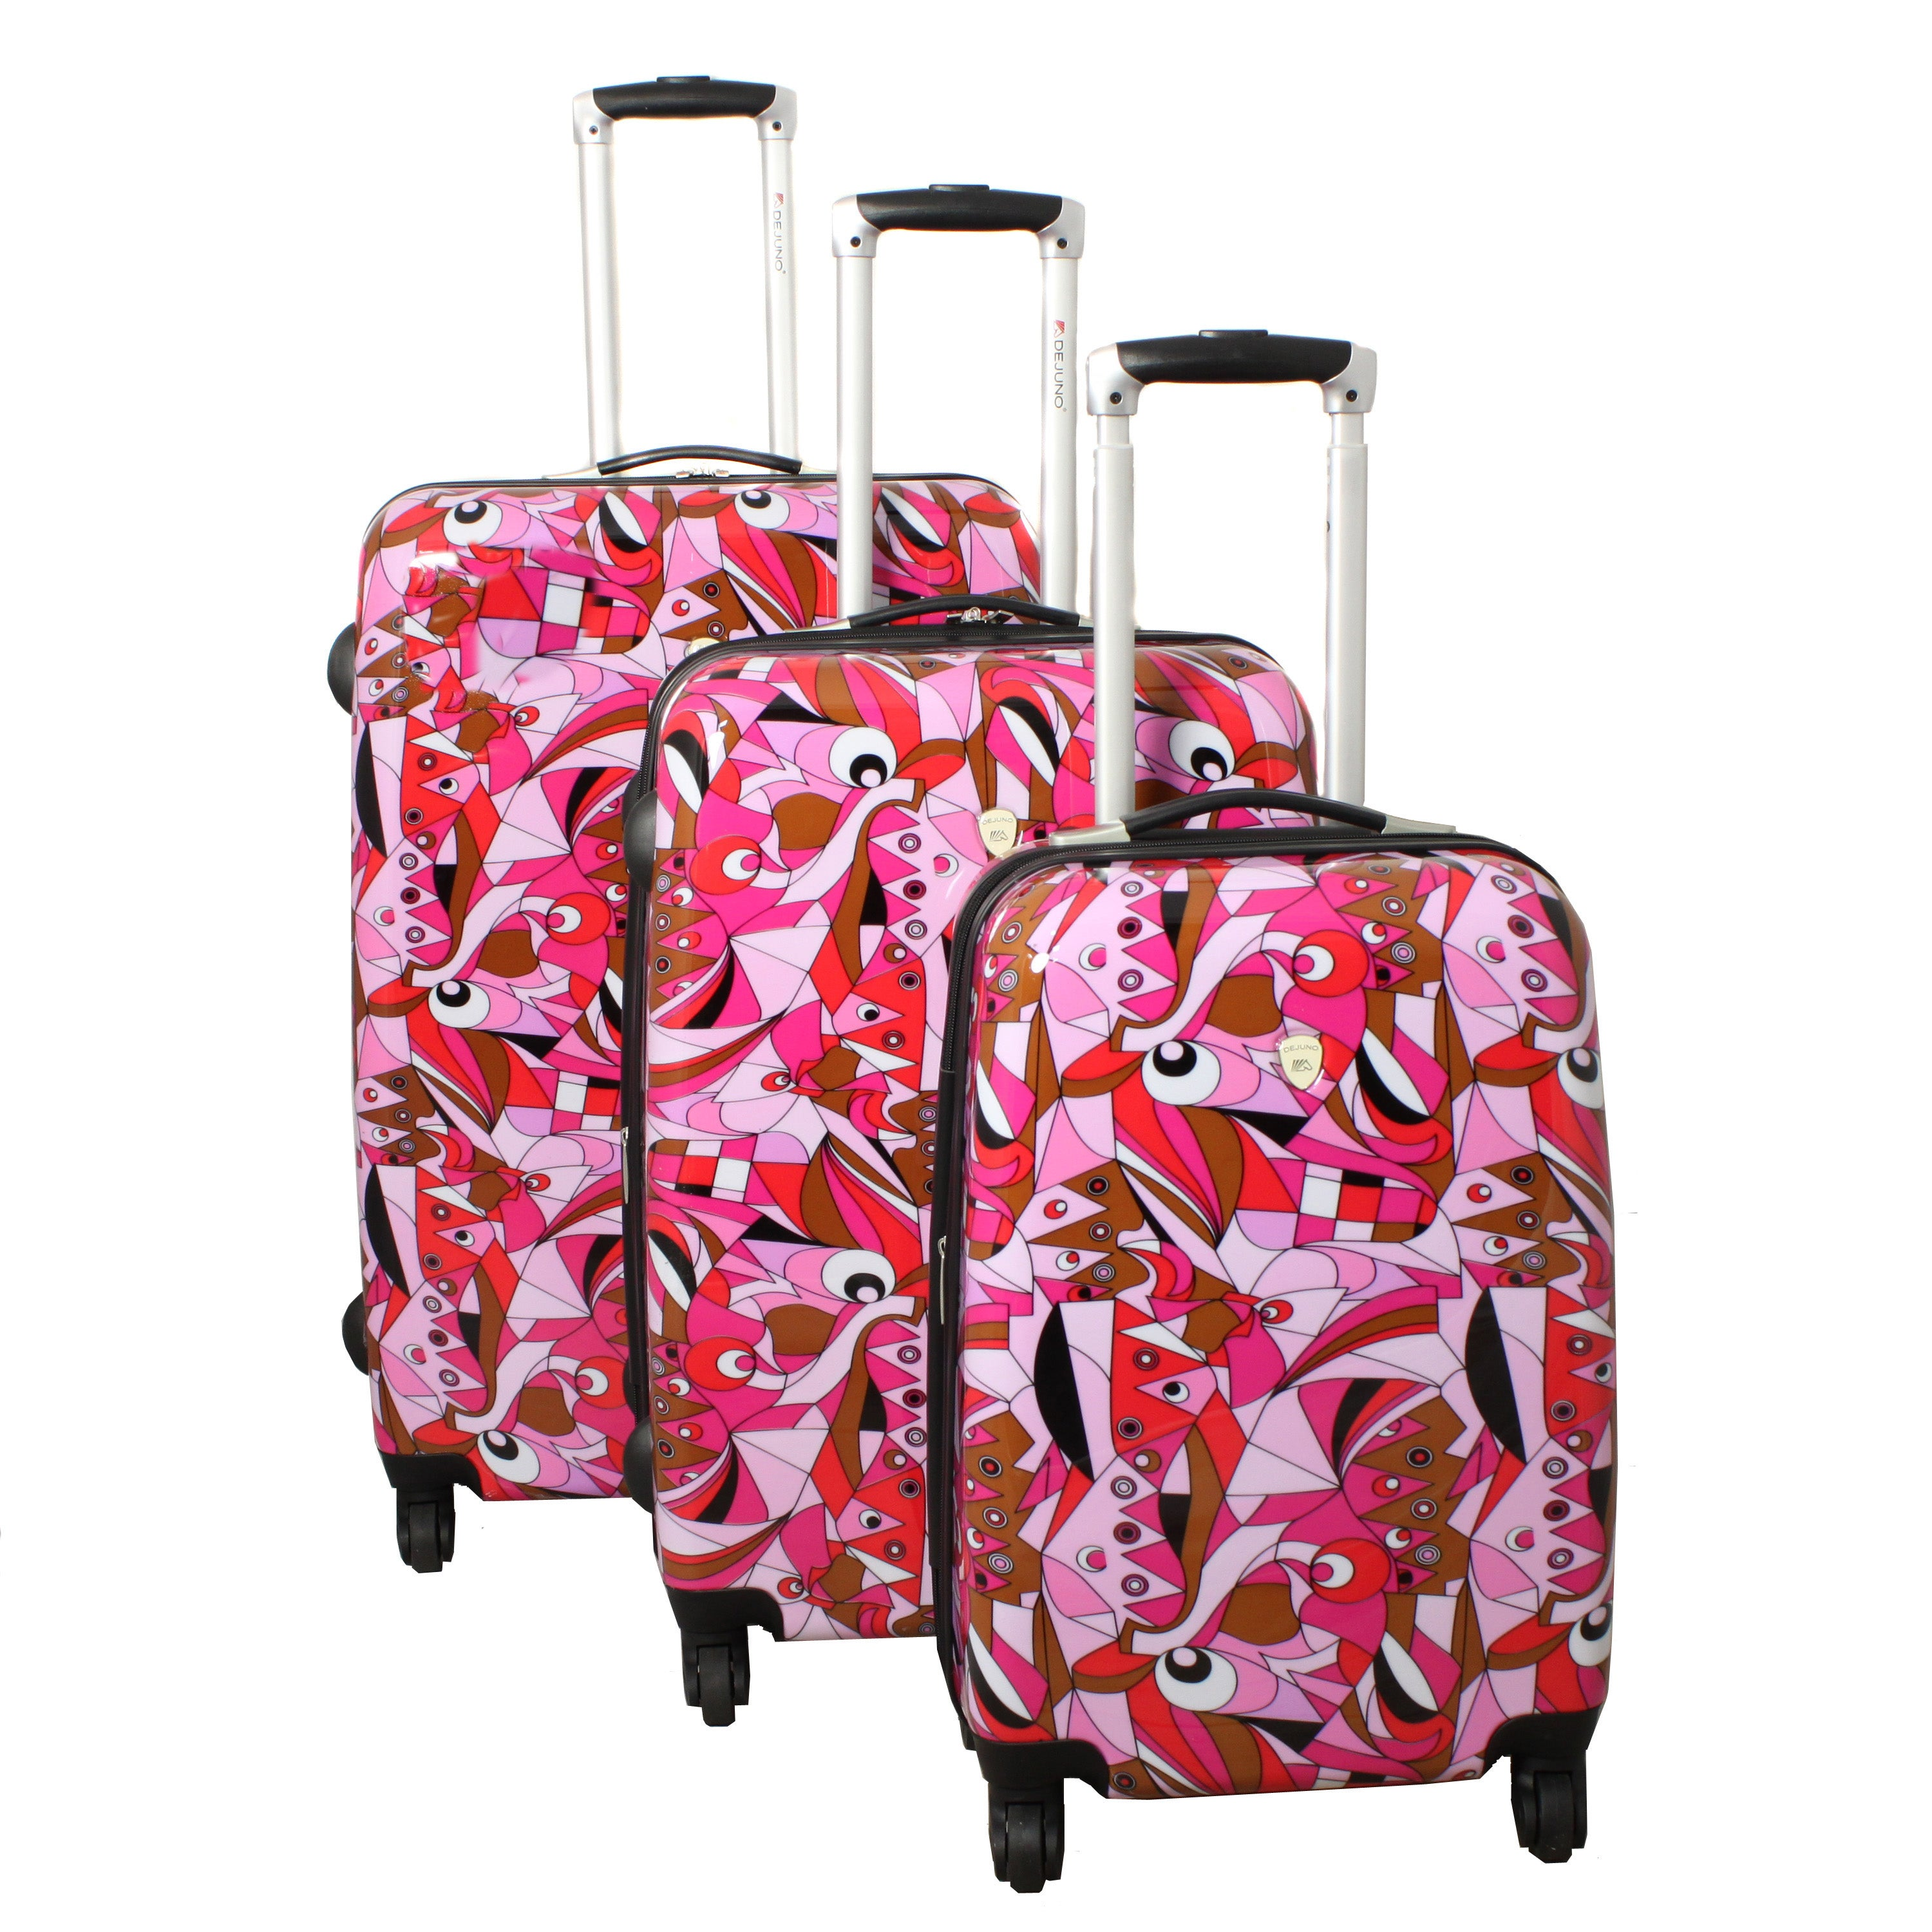 Abstract Dreams 3-piece Lightweight Pink Expandable Hardside Spinner Luggage Set